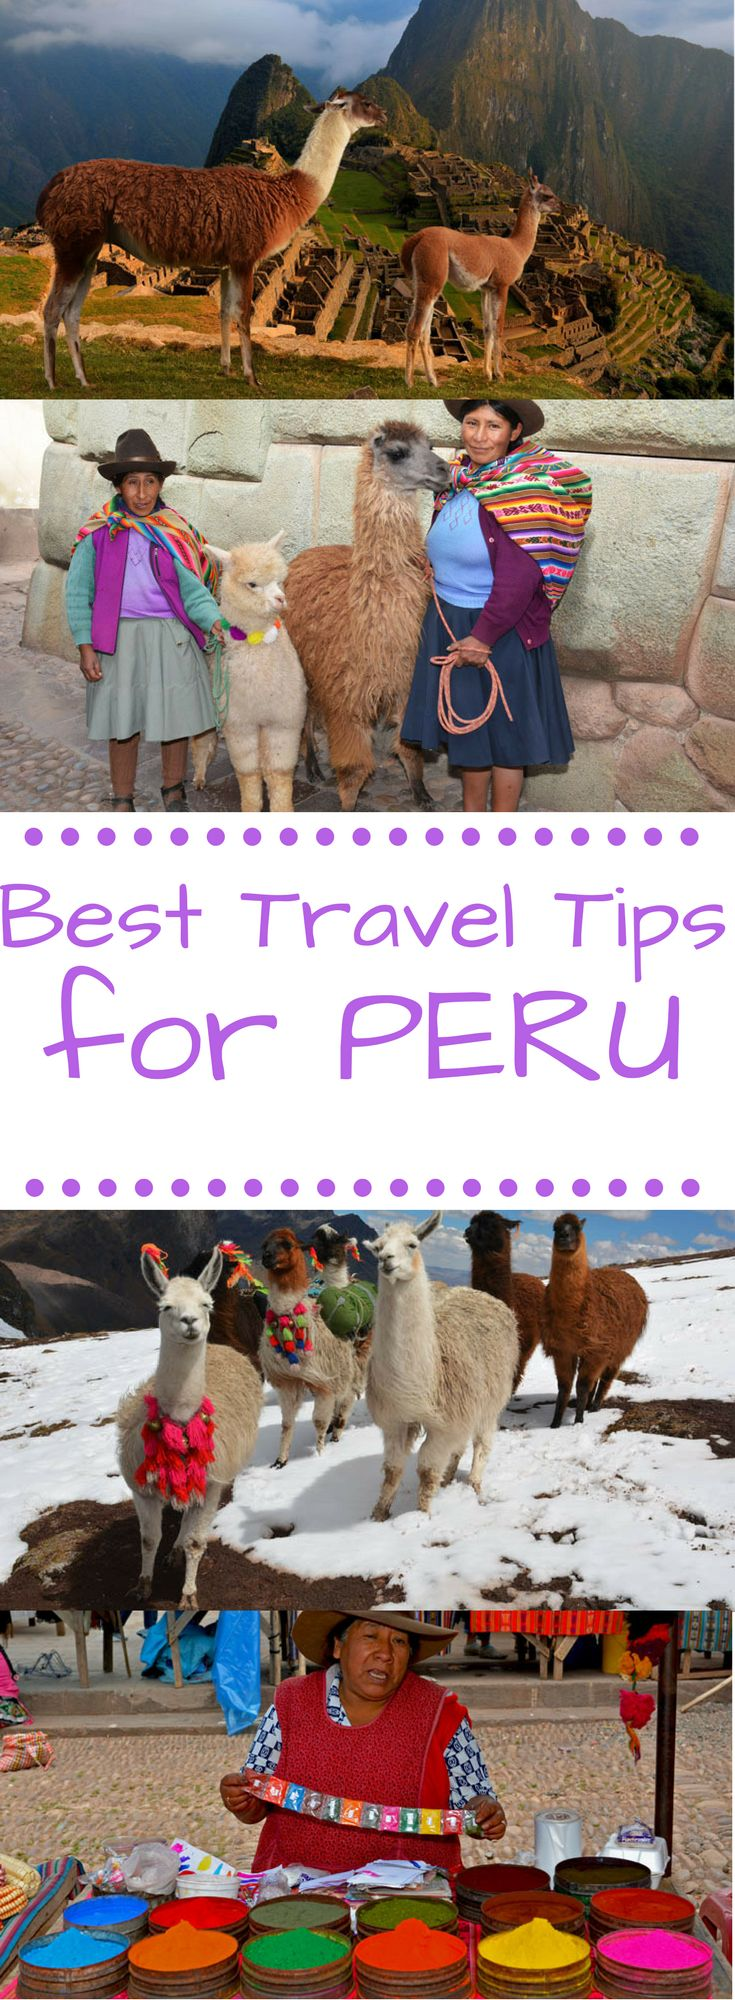 65 Travel Tips for Peru